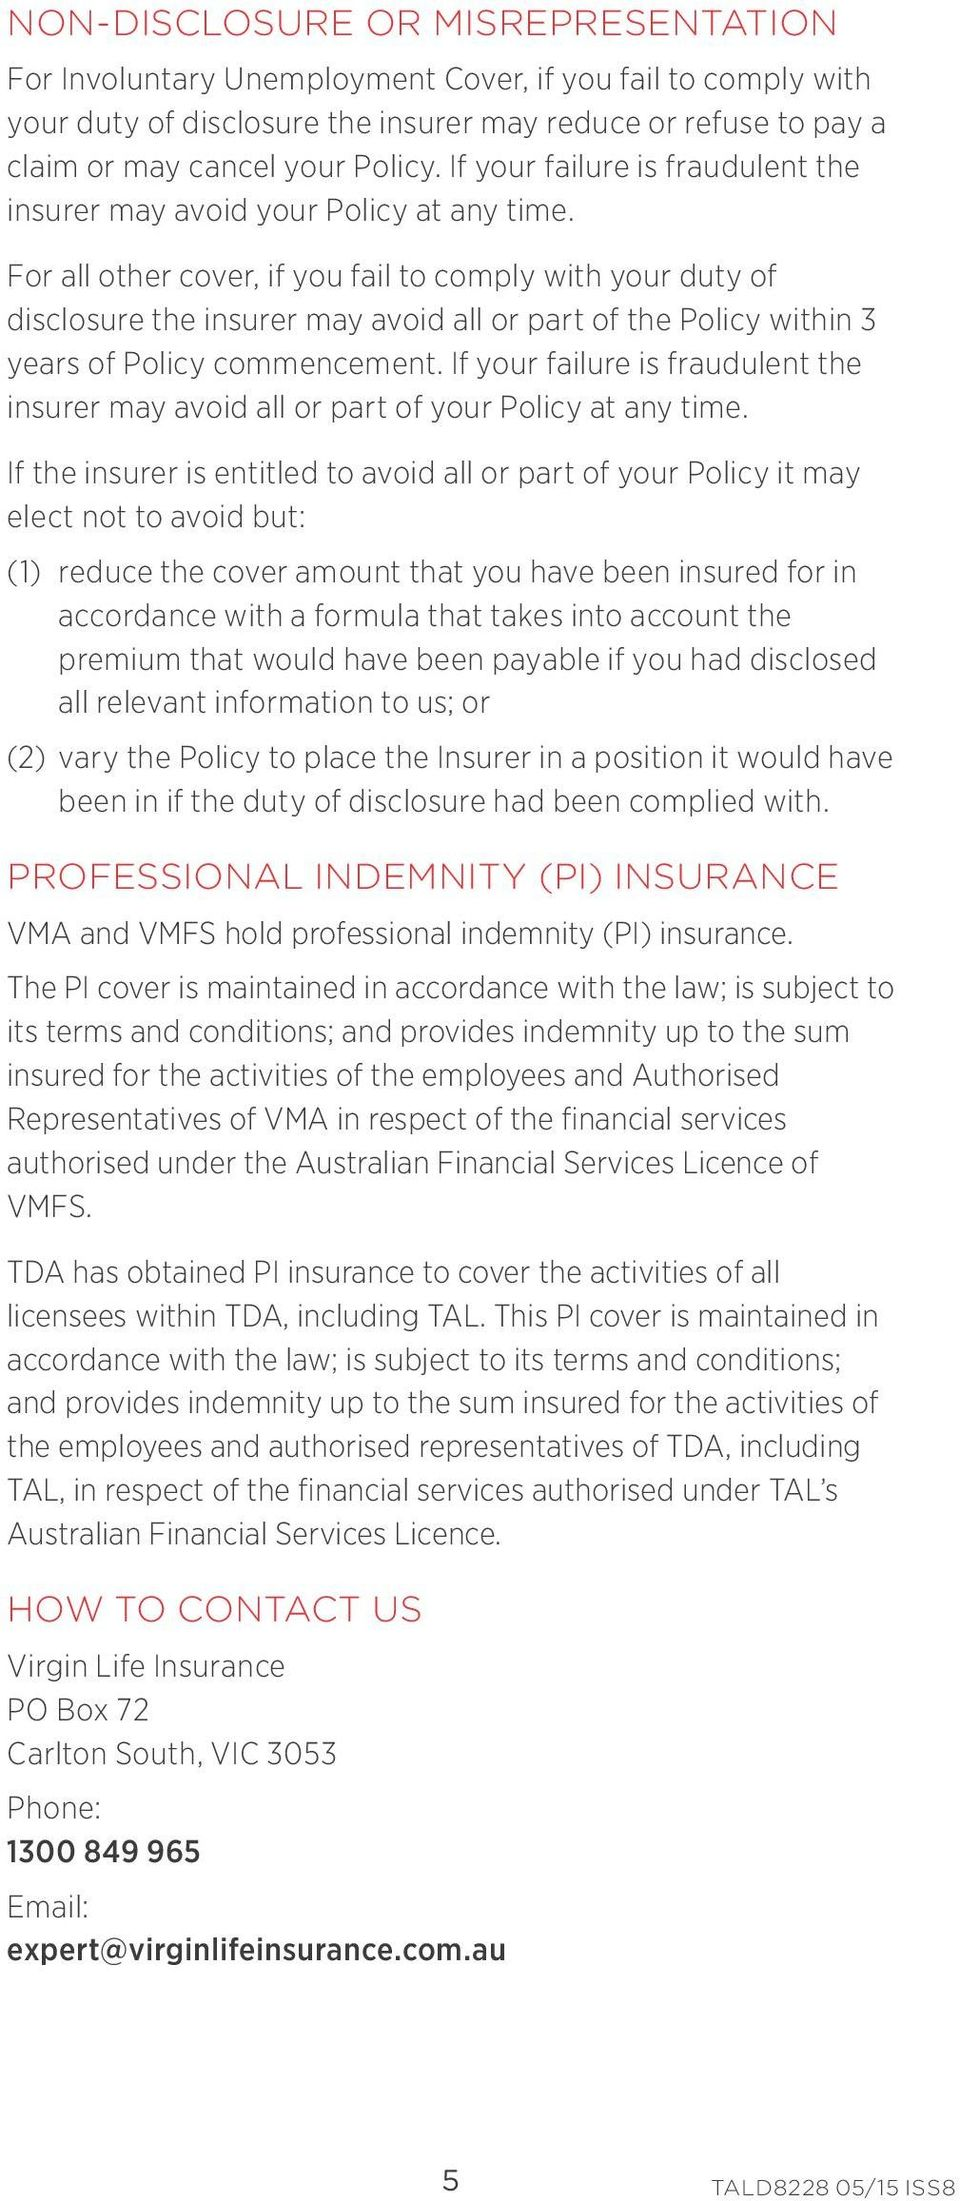 For all other cover, if you fail to comply with your duty of disclosure the insurer may avoid all or part of the Policy within 3 years of Policy commencement.